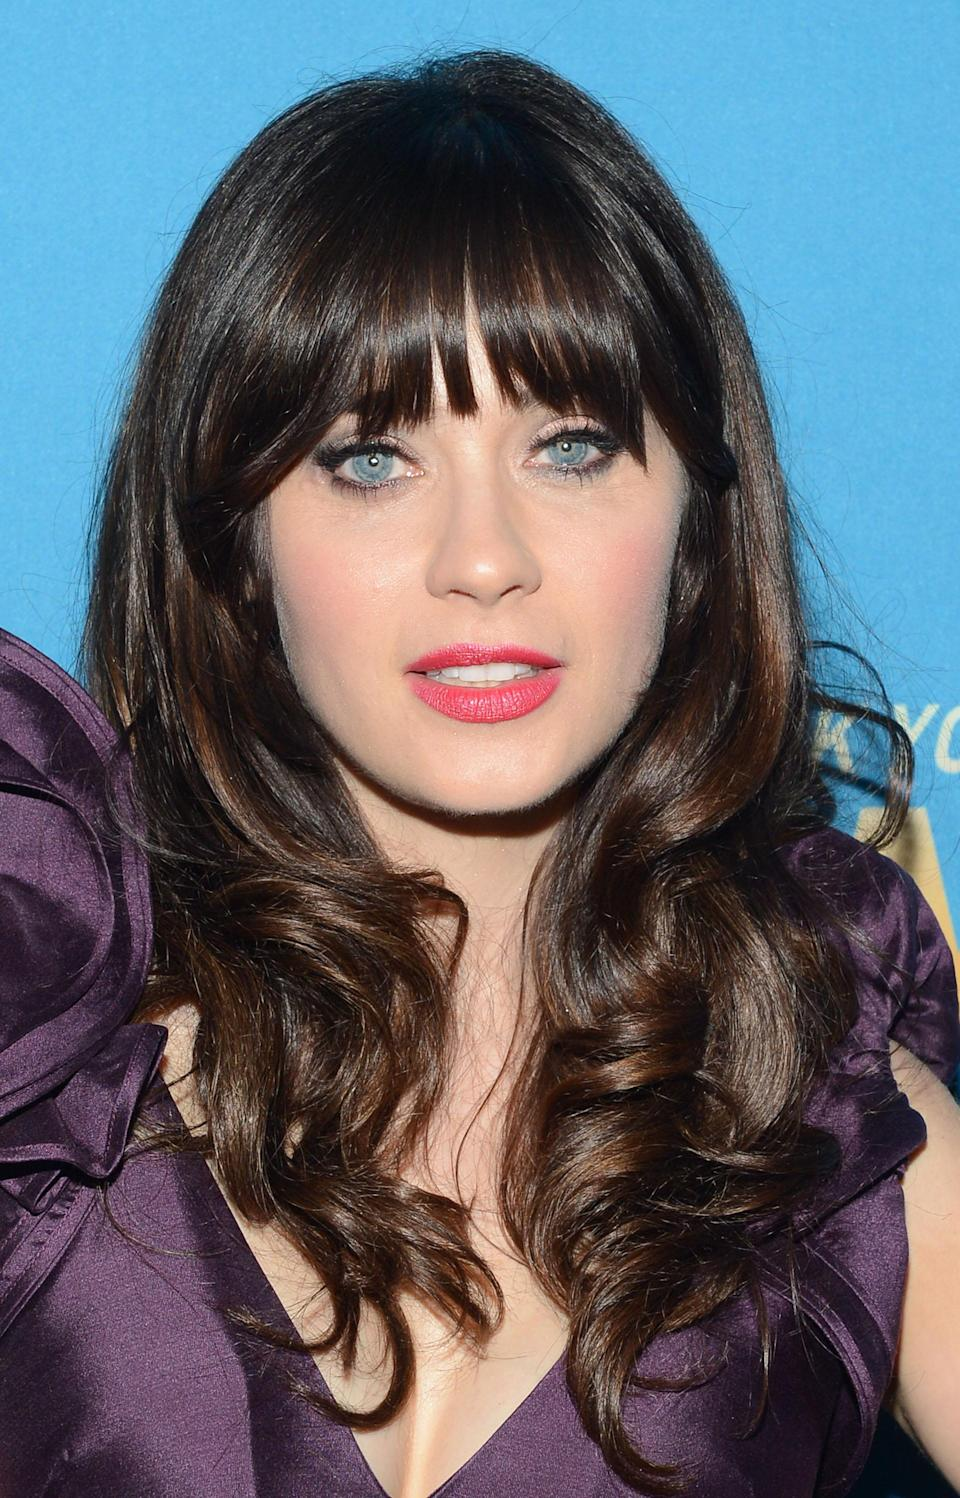 "<b>Zooey Deschanel:</b> ""I'm terribly sad to hear about what happened in Aurora, Co. last night, my thoughts and prayers are with the victims of this tragedy."" (Photo by Mark Davis/Getty Images)"